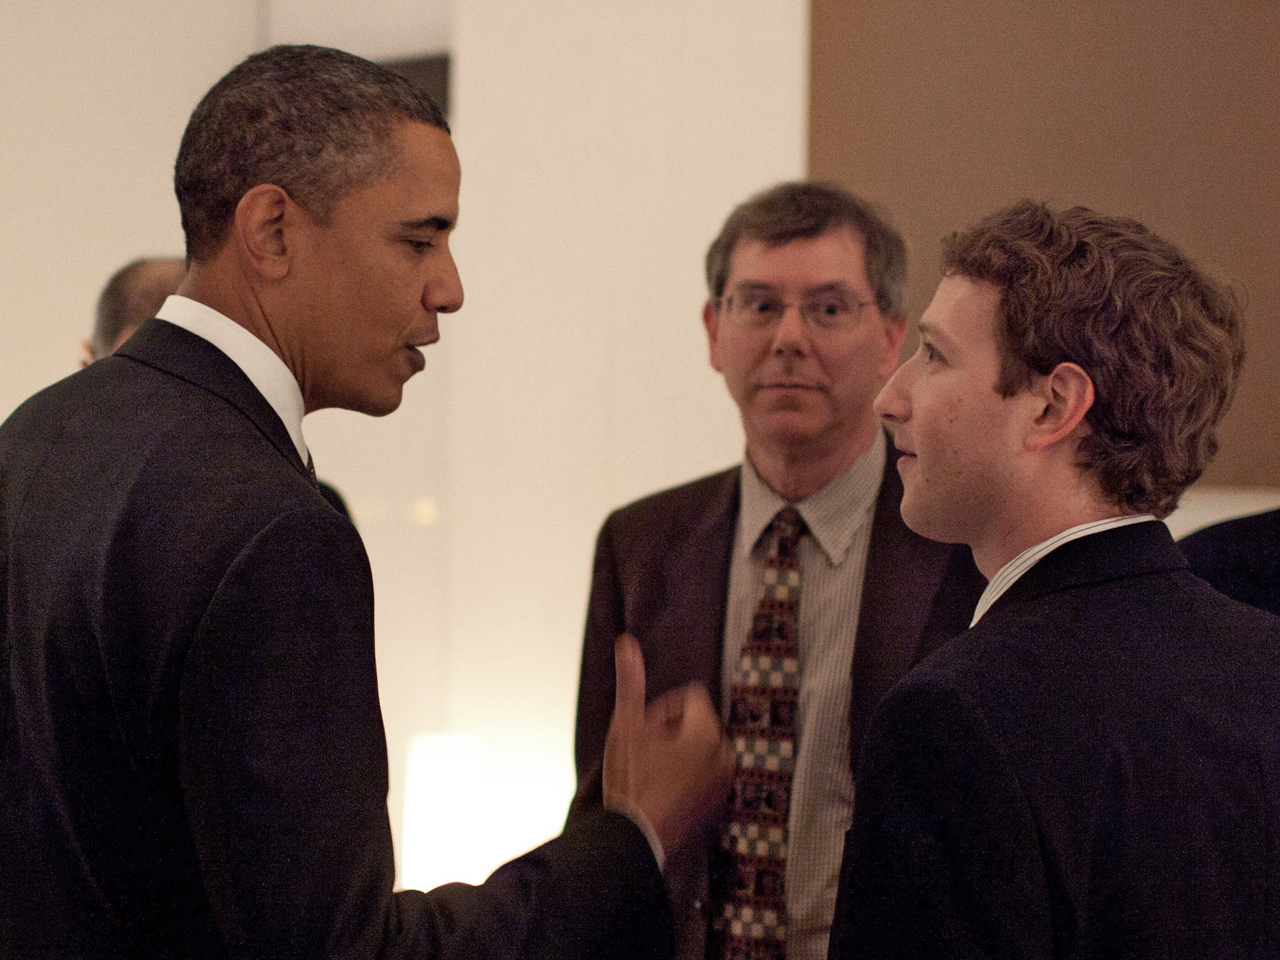 President Barack Obama talks with Facebook founder and CEO Mark Zuckerberg